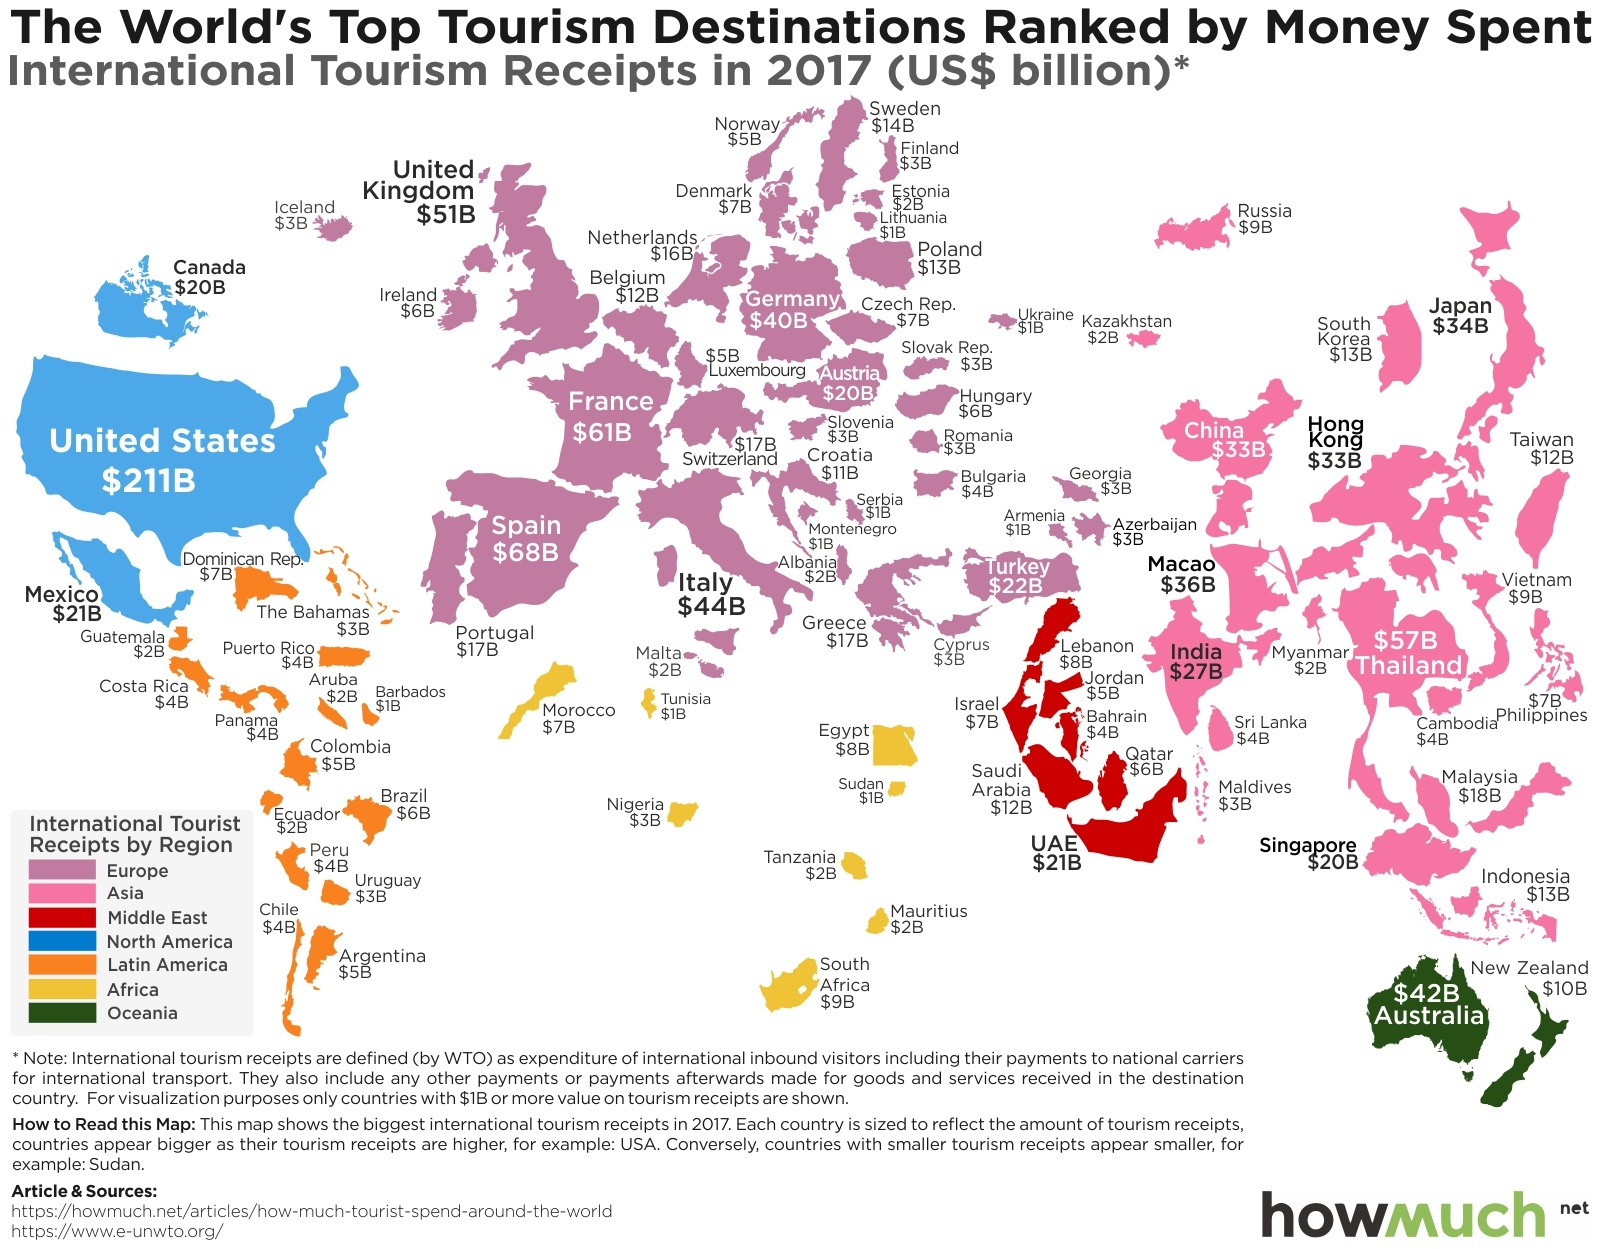 Where Tourists Spend the Most Money